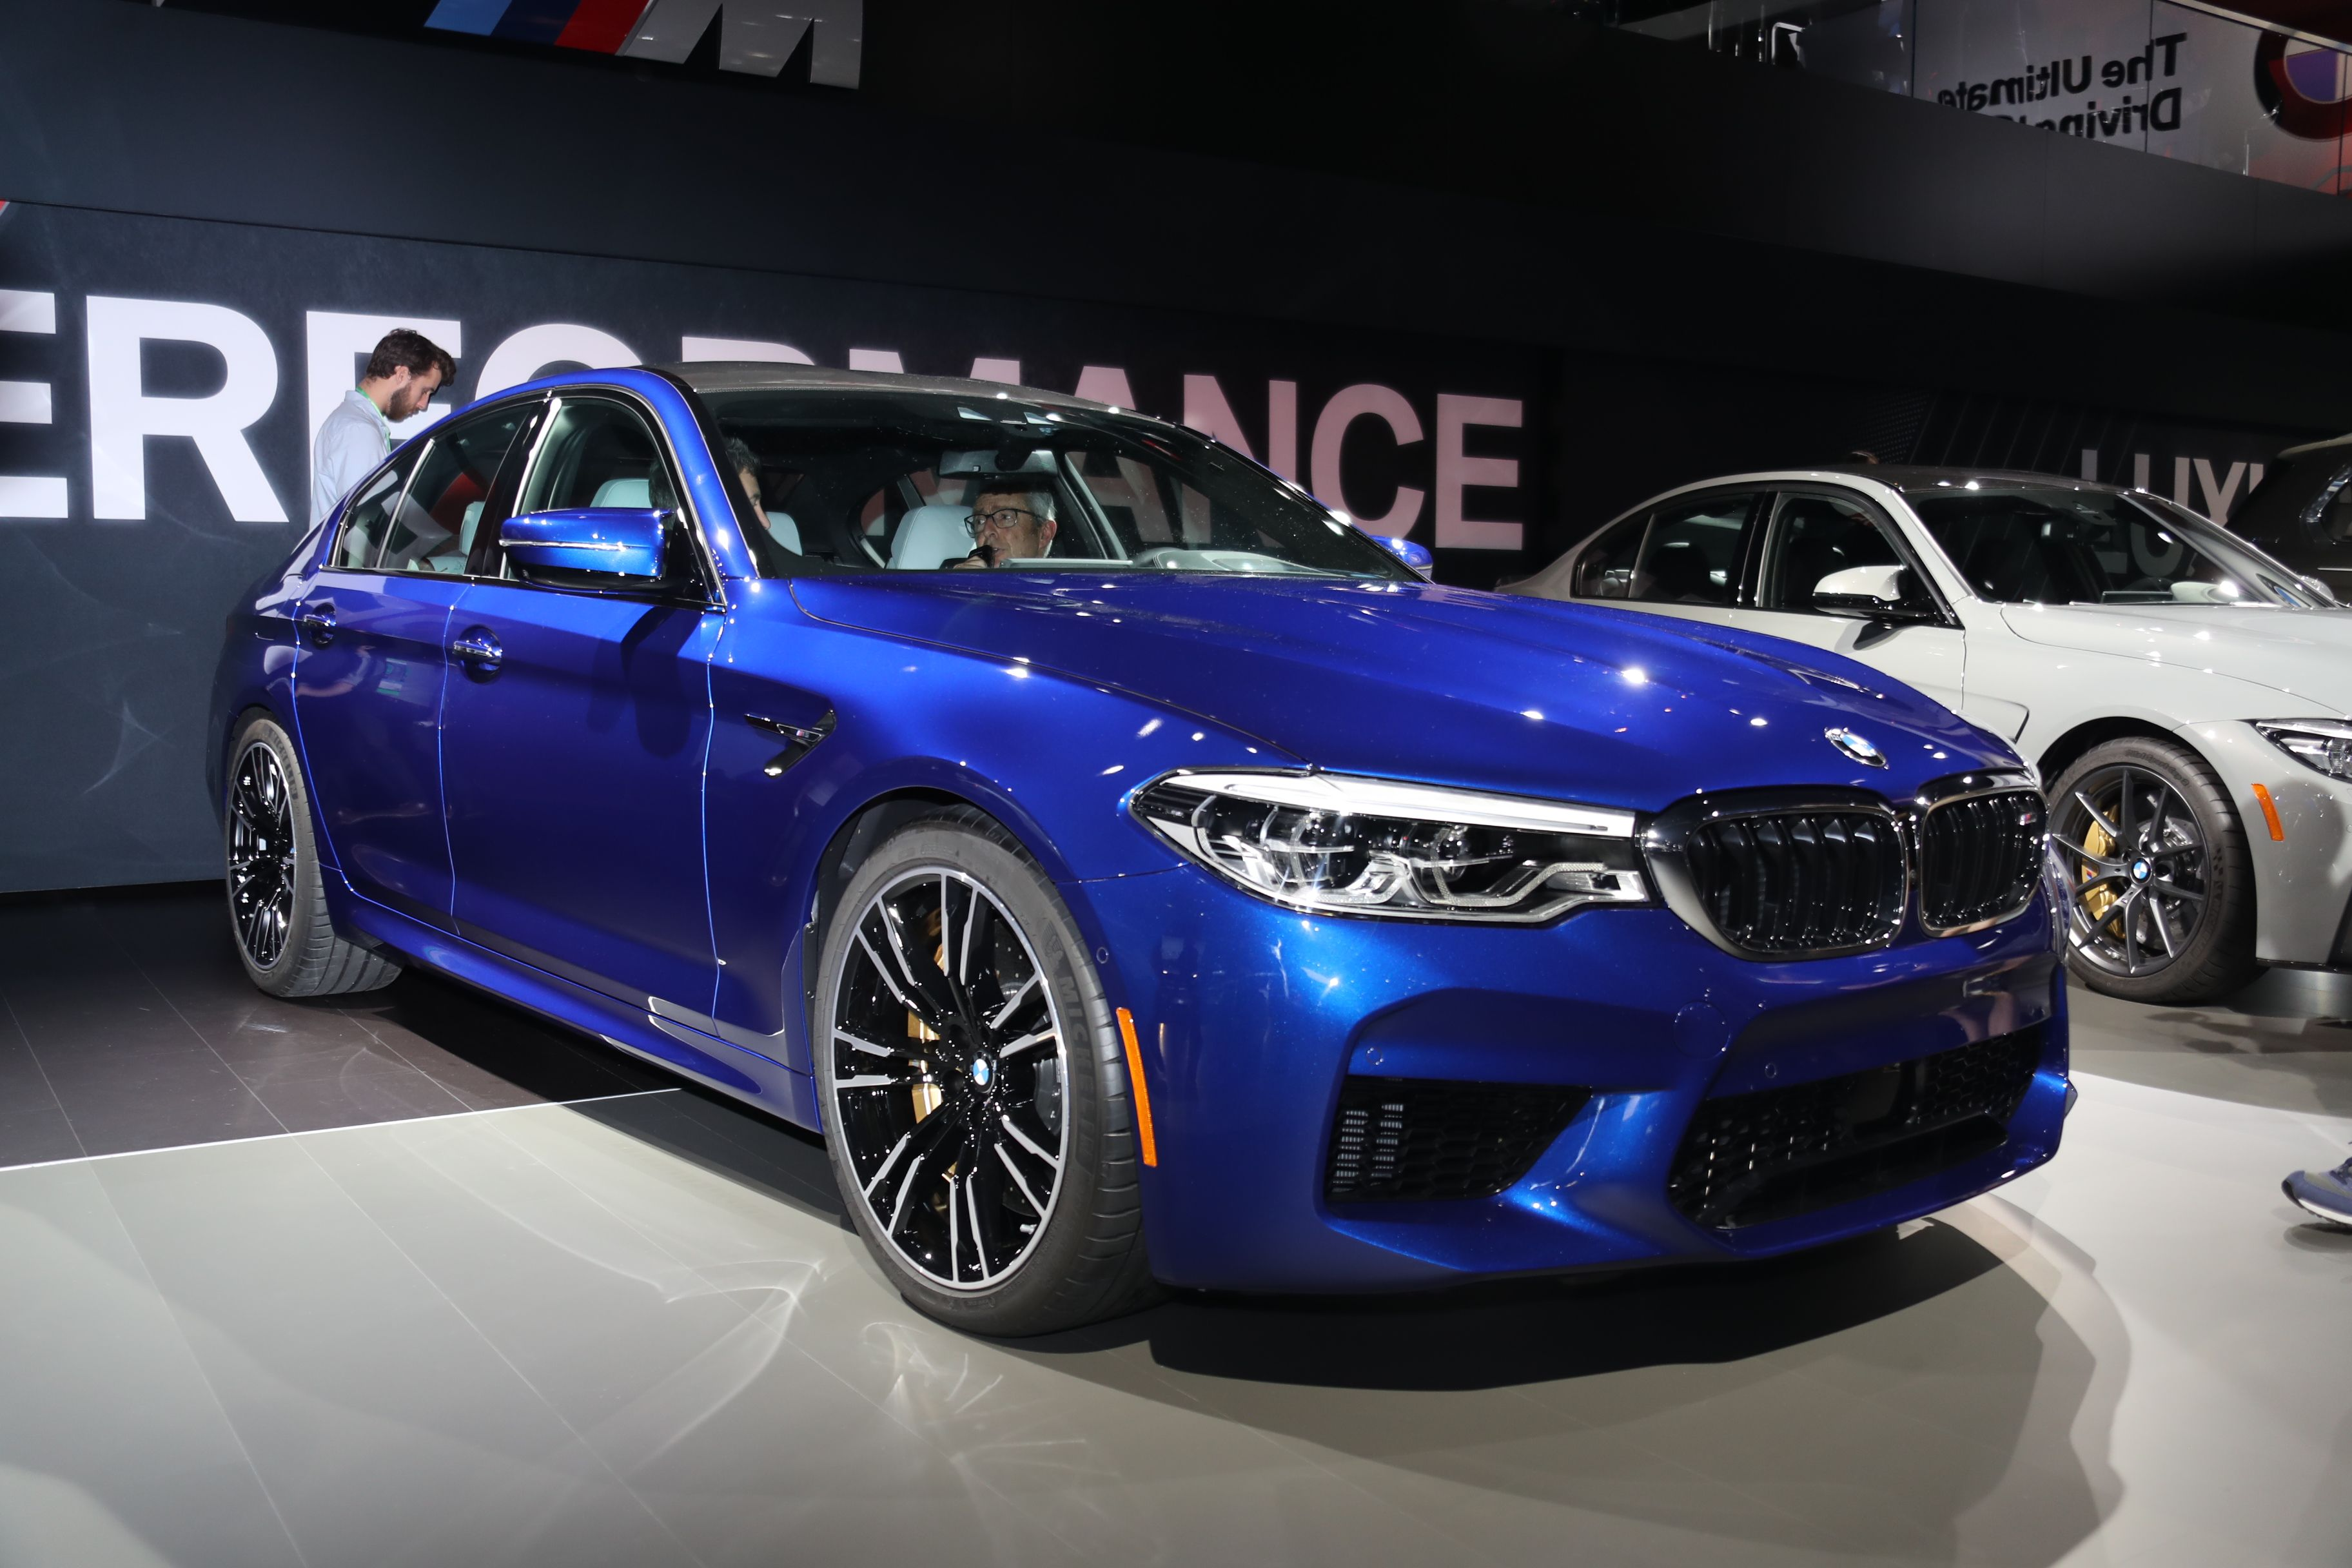 2018 Bmw M5 600 Hp And All Wheel Drive For 102 600 Roadandtrack